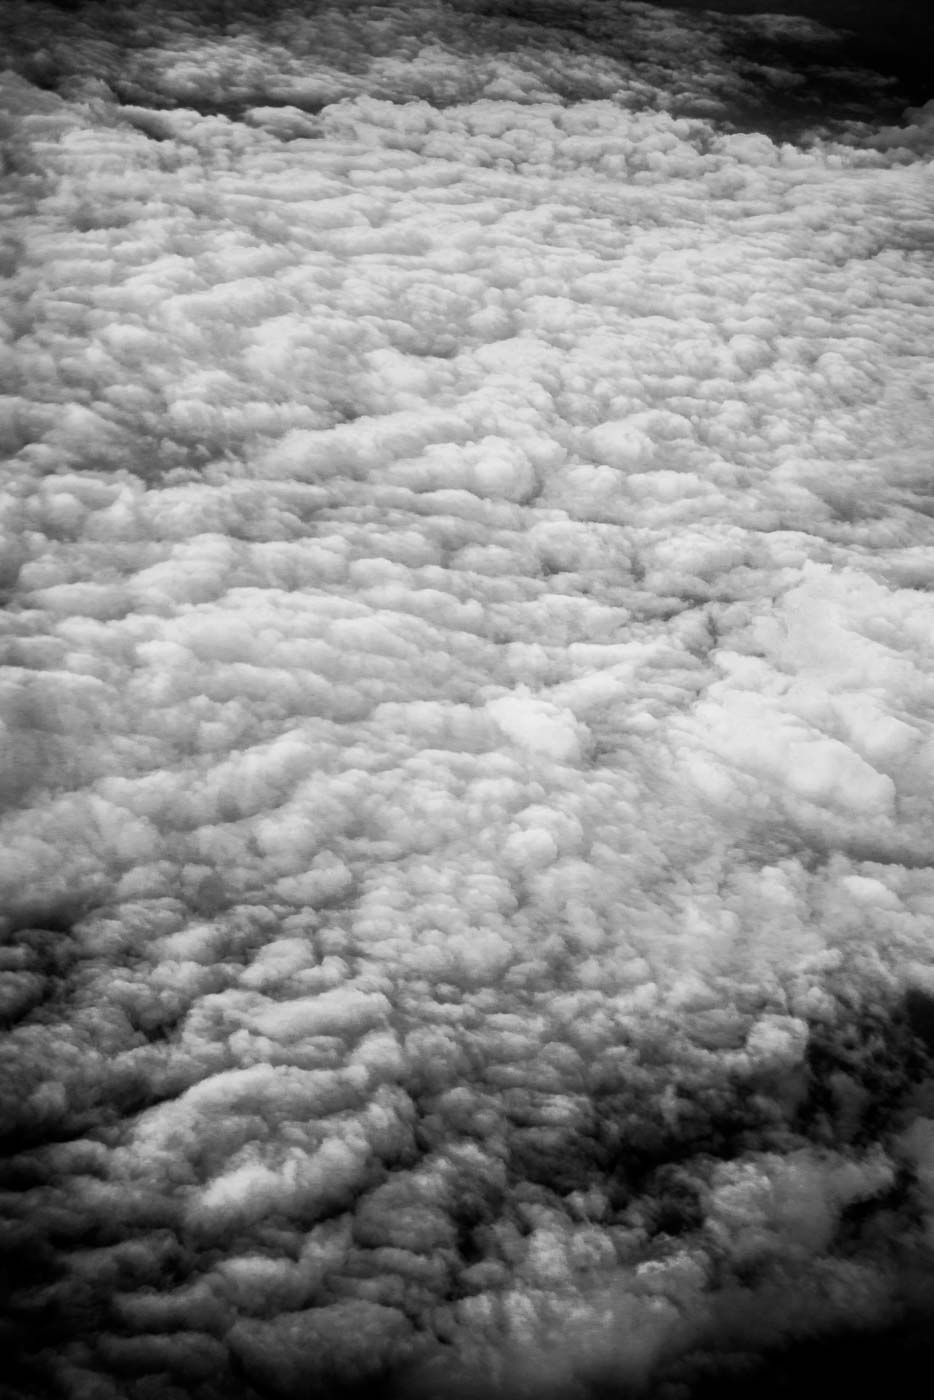 Cloud field from Delta Airlines 2016 © Robert Welkie